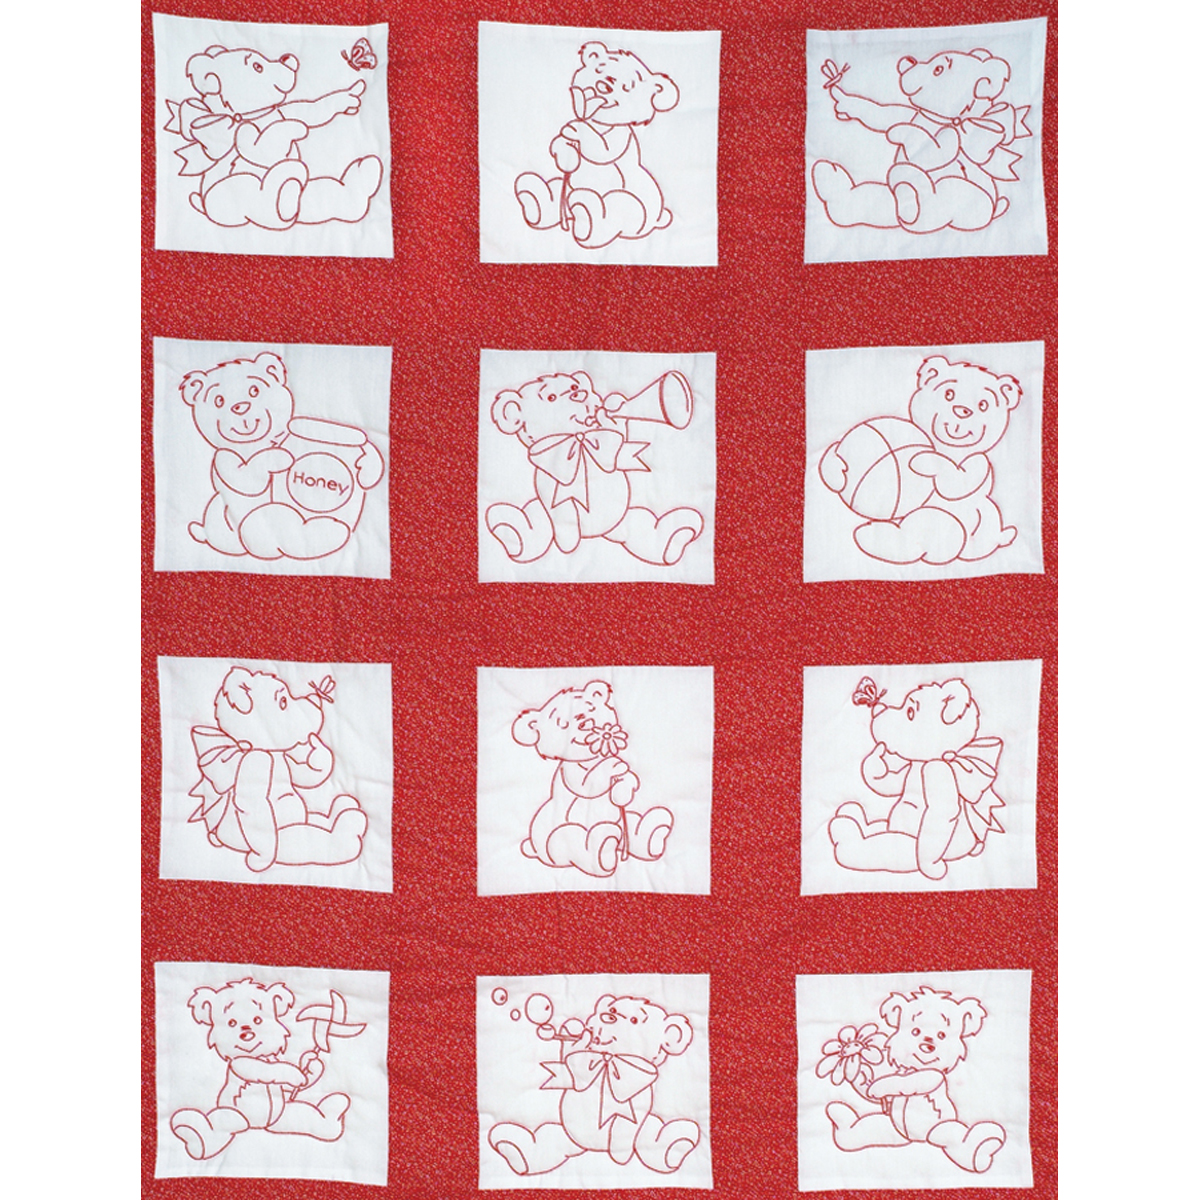 Stamped Embroidery Blocks - 9in - Baby Bears